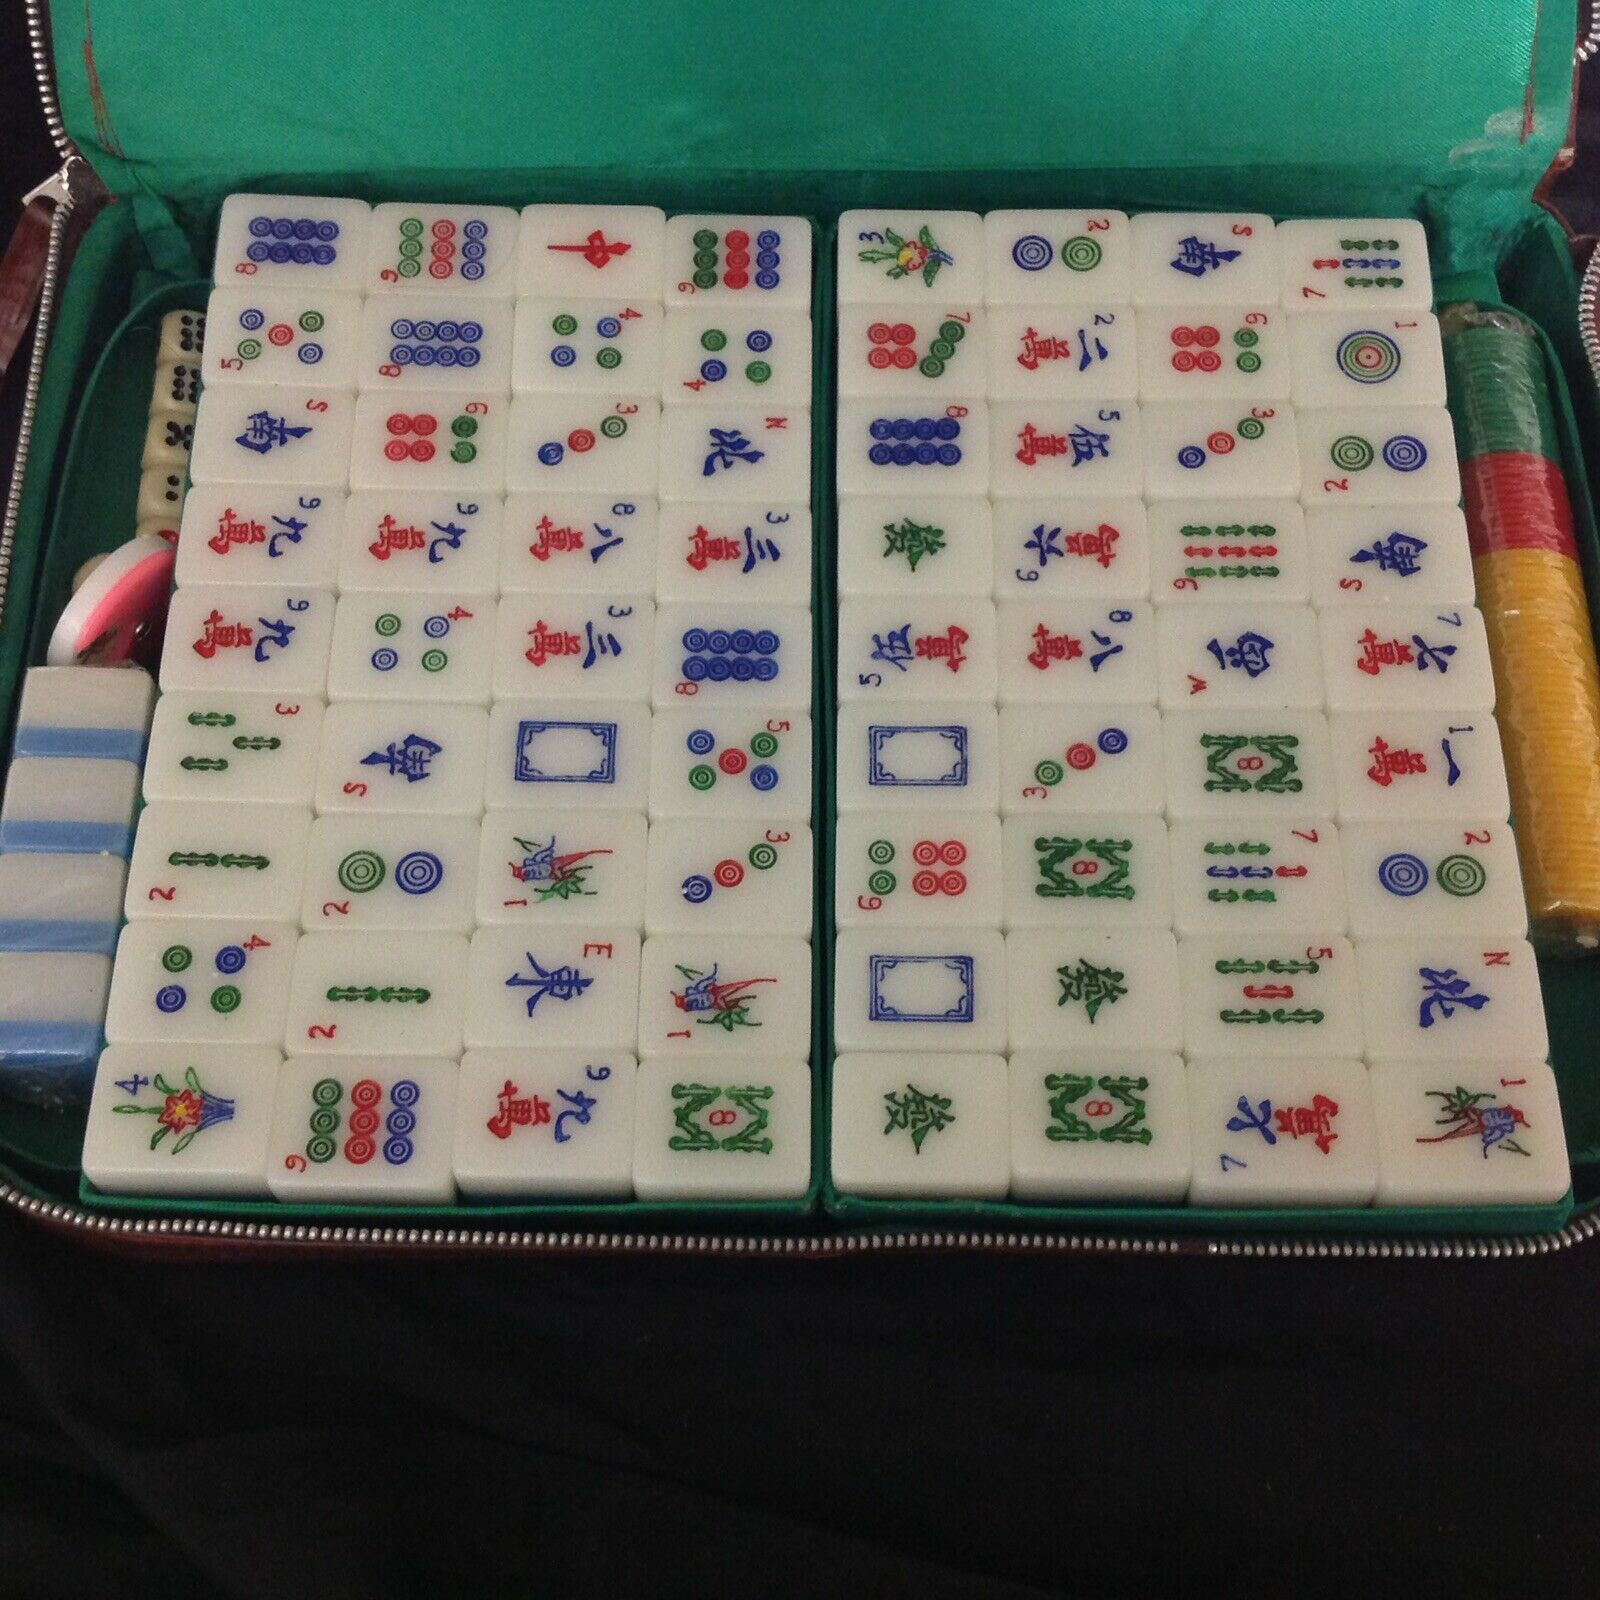 Vintage Eastern Mahjong Set (144 Pieces) In Leatherette Case, Barely Used